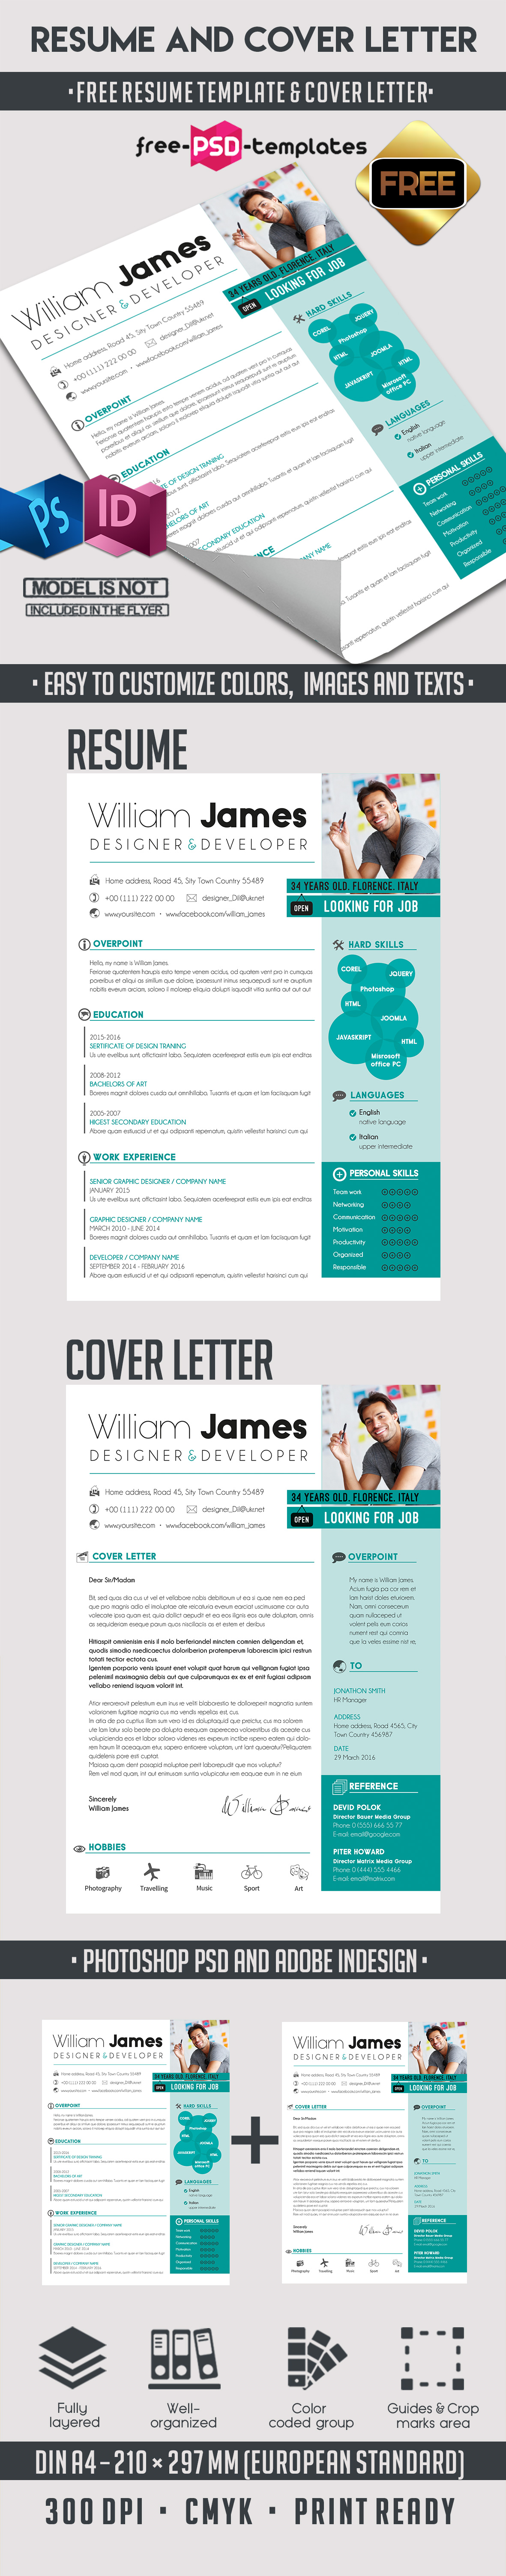 free resume and cover letter builder free resume template cover letter psd templates bigpreview free resume